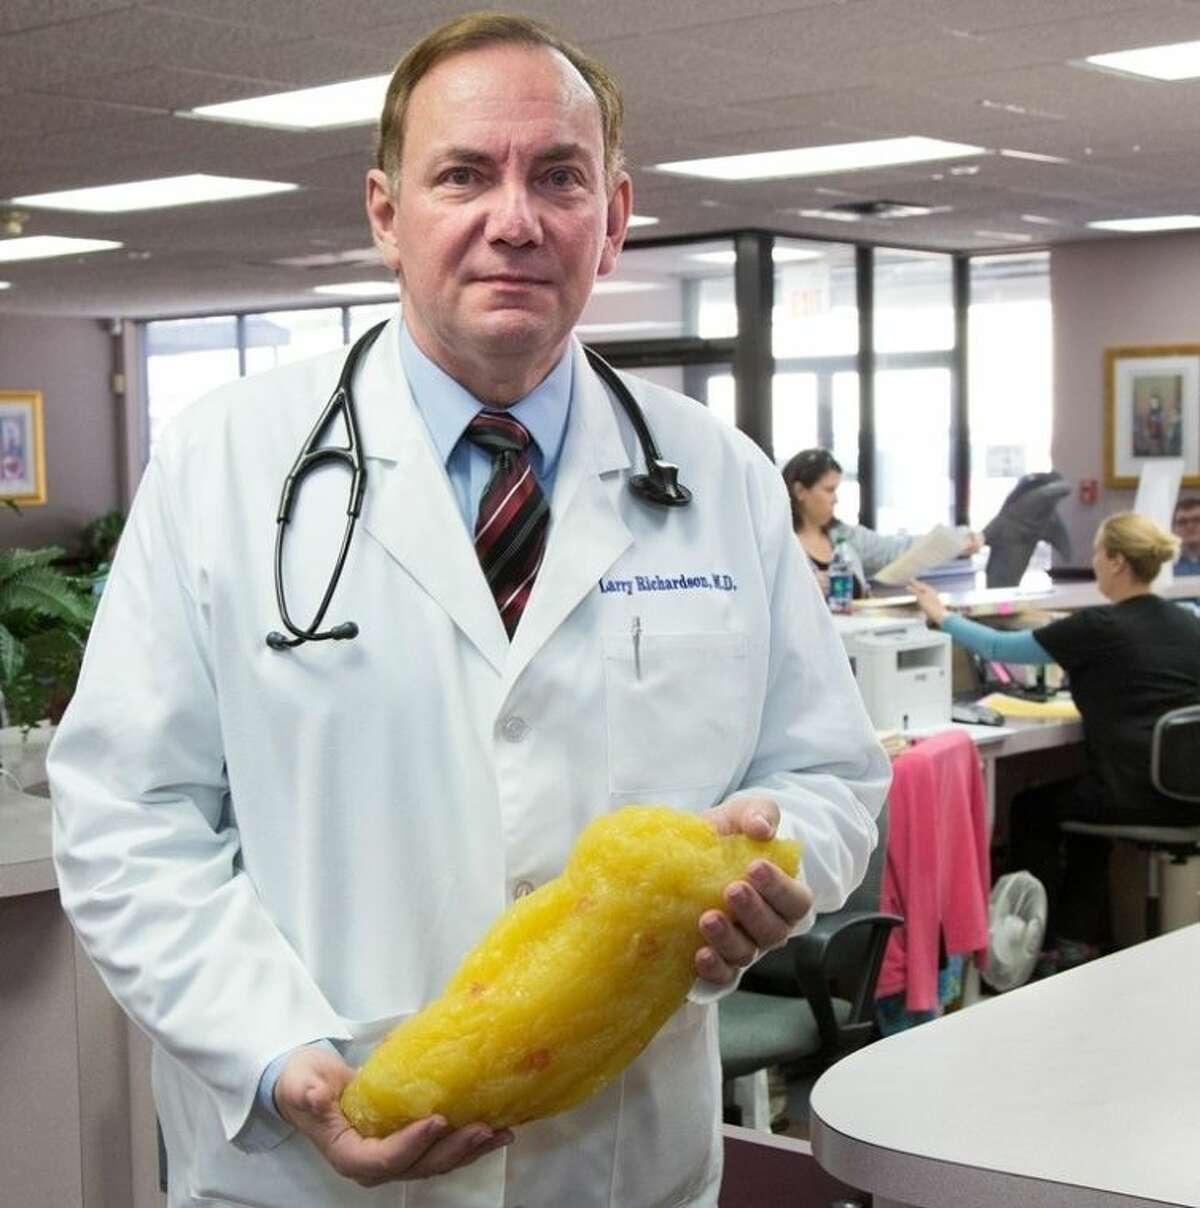 Dr. Larry Richardson, Founder of Doctor's Weight Control Center, holds five pounds of body fat and explains why women may experience weight loss difficulties.